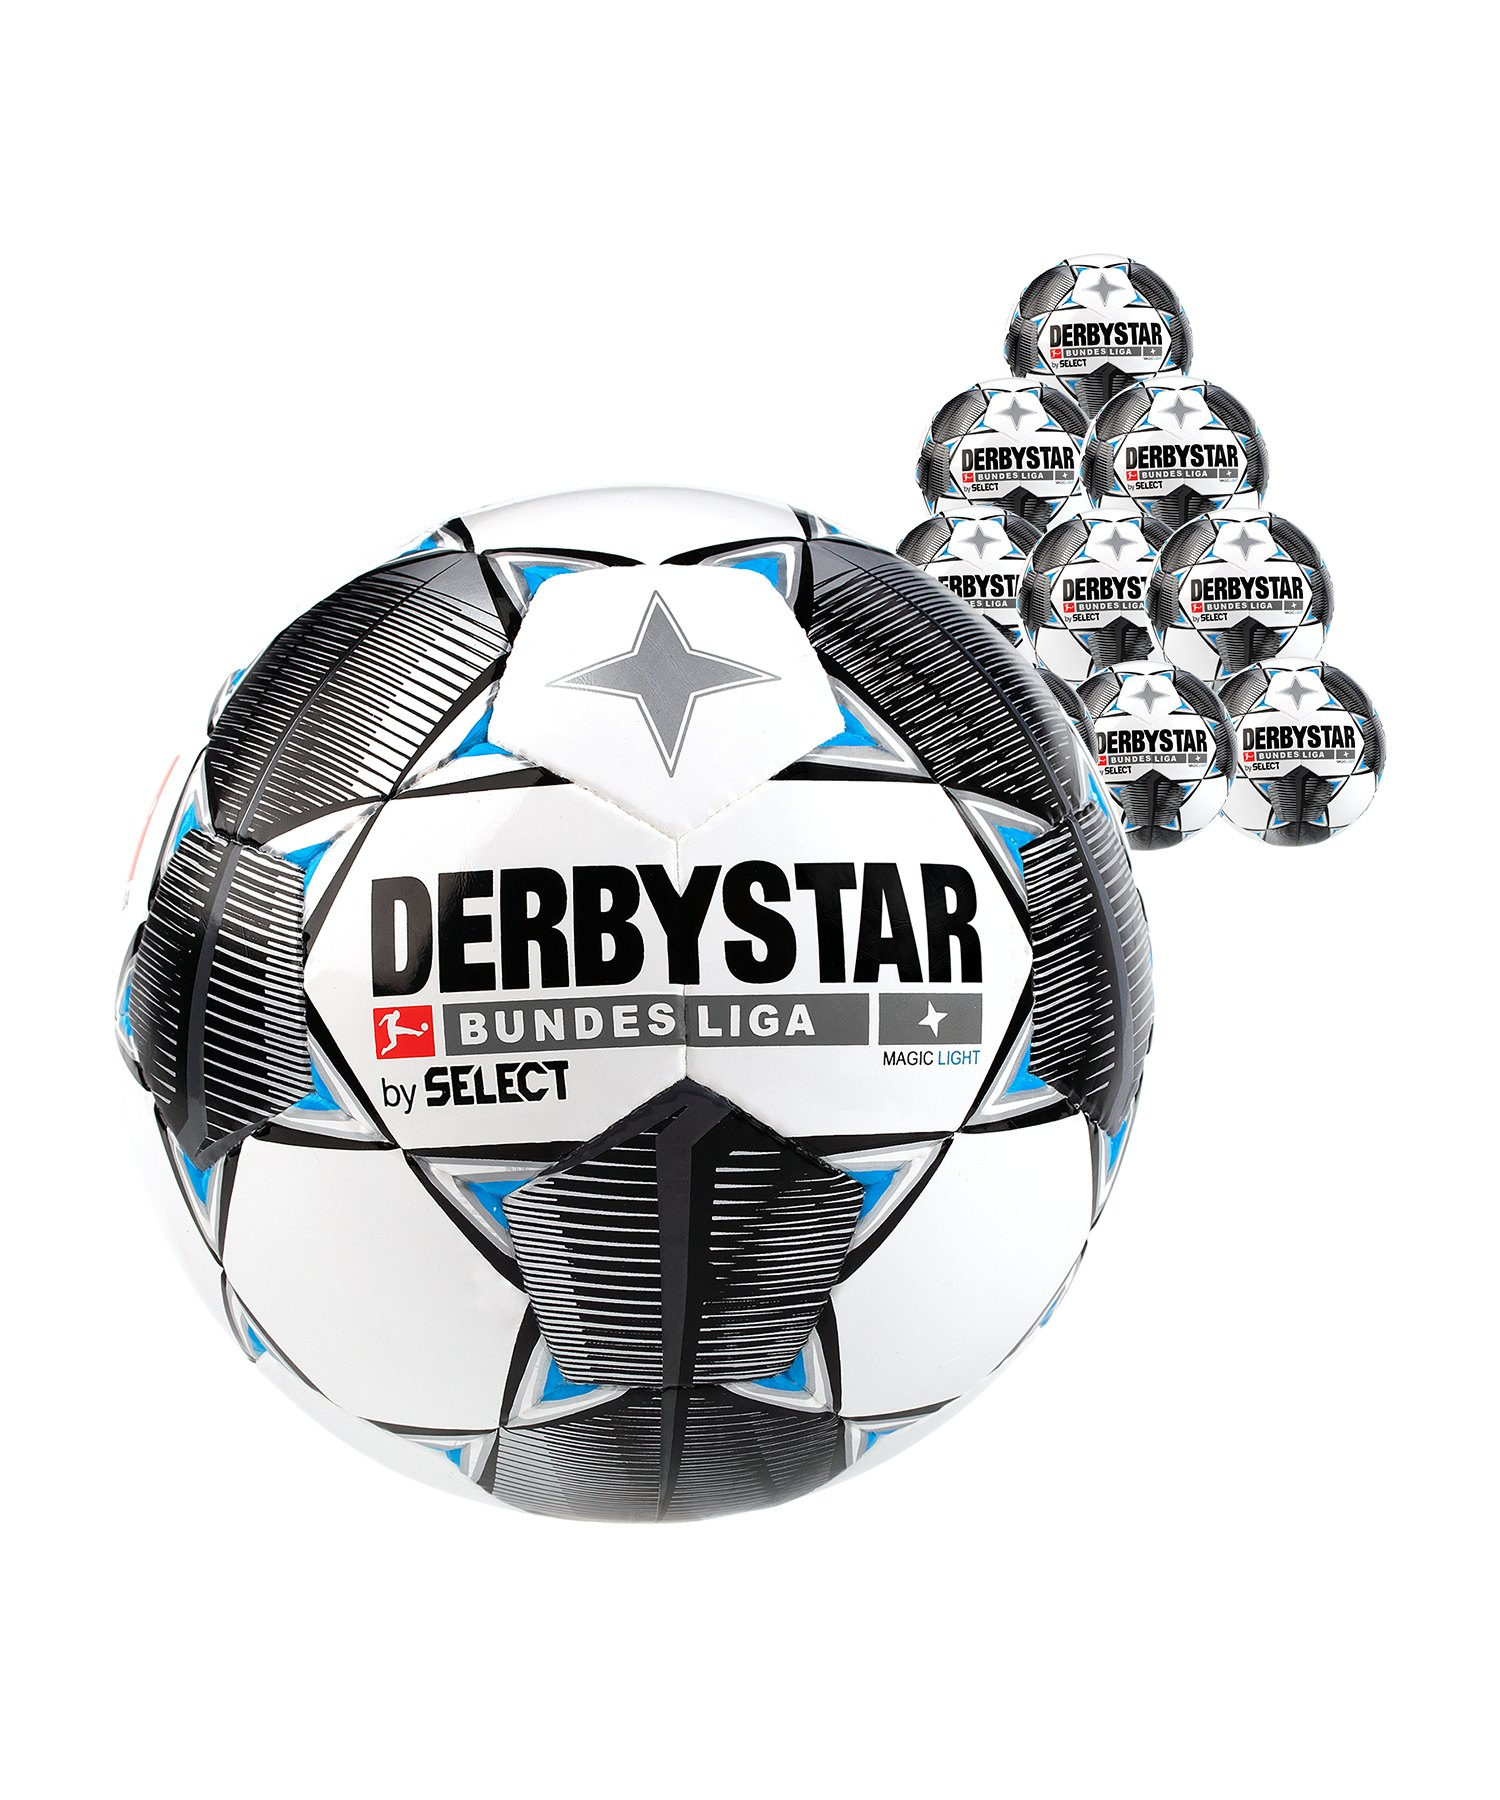 Derbystar Buli Magic Light 350g 10x Gr.5 Weiss F019 - weiss